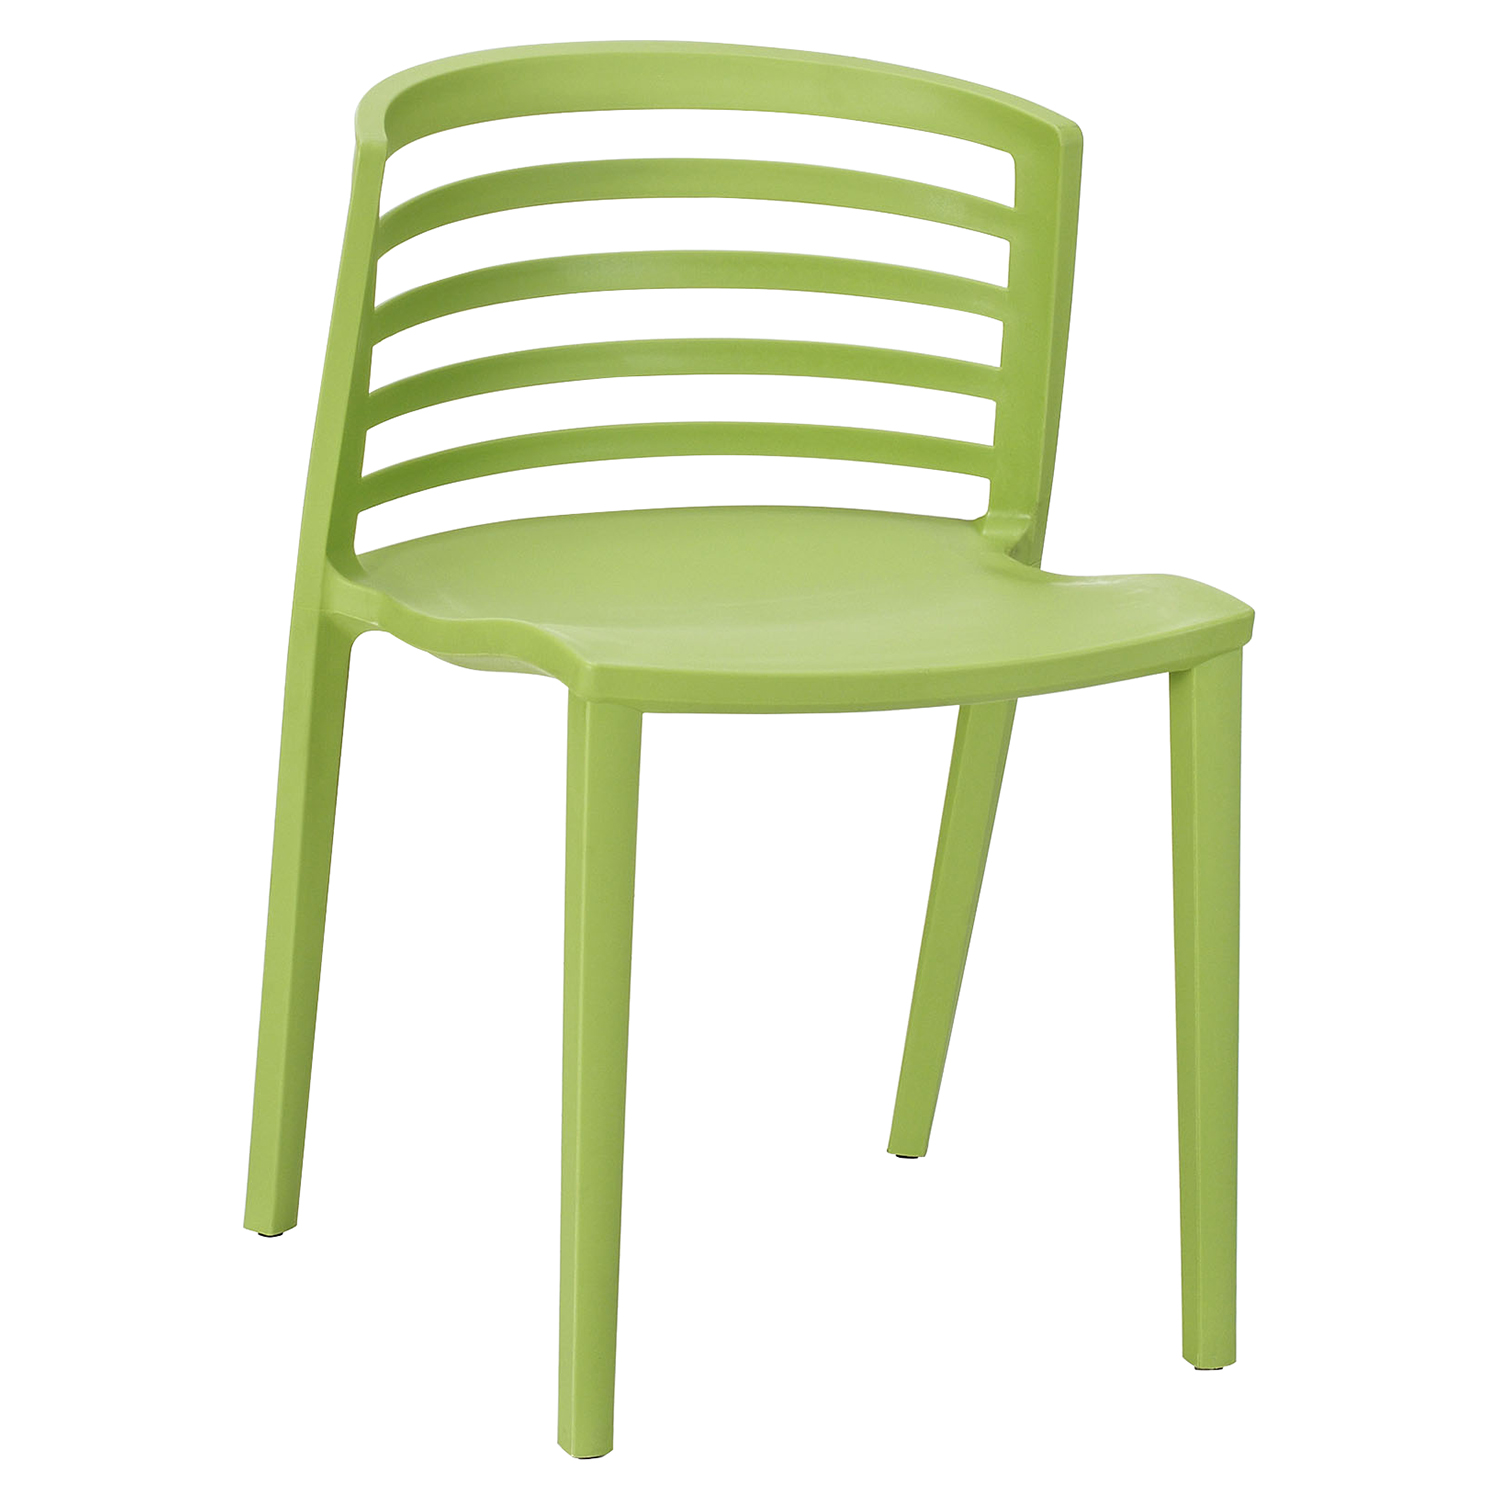 Curvy Dining Side Chair - EEI-557